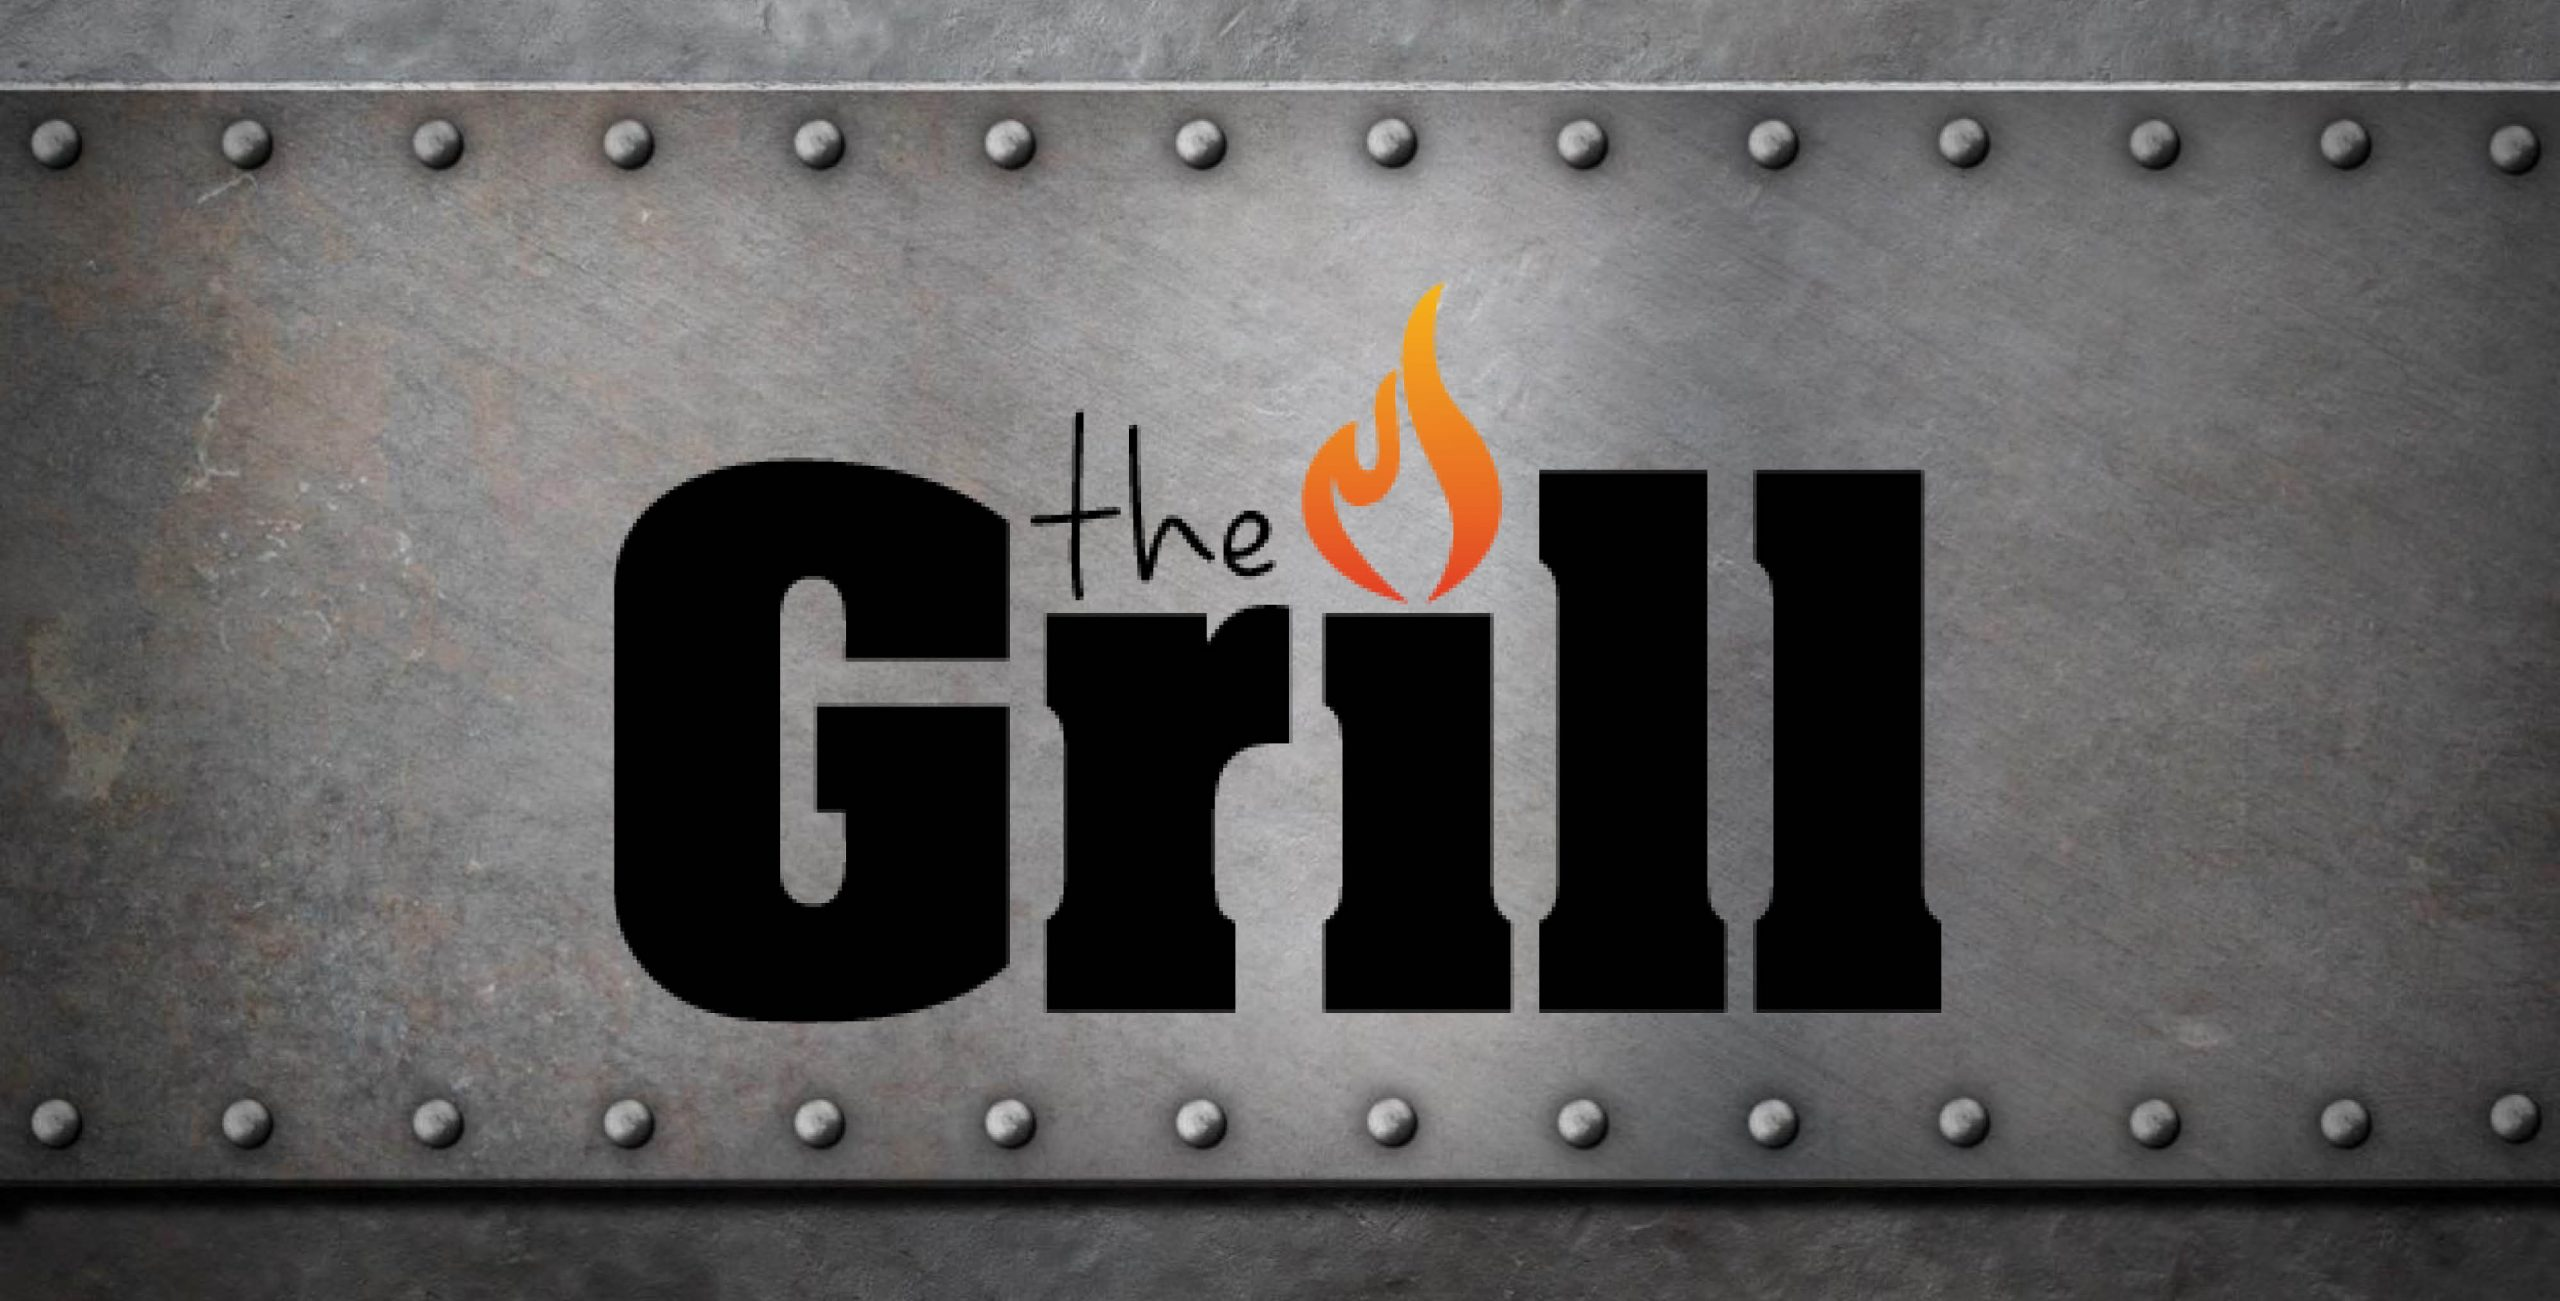 The name change continues as formerly known Cru5h is now called the Grill.